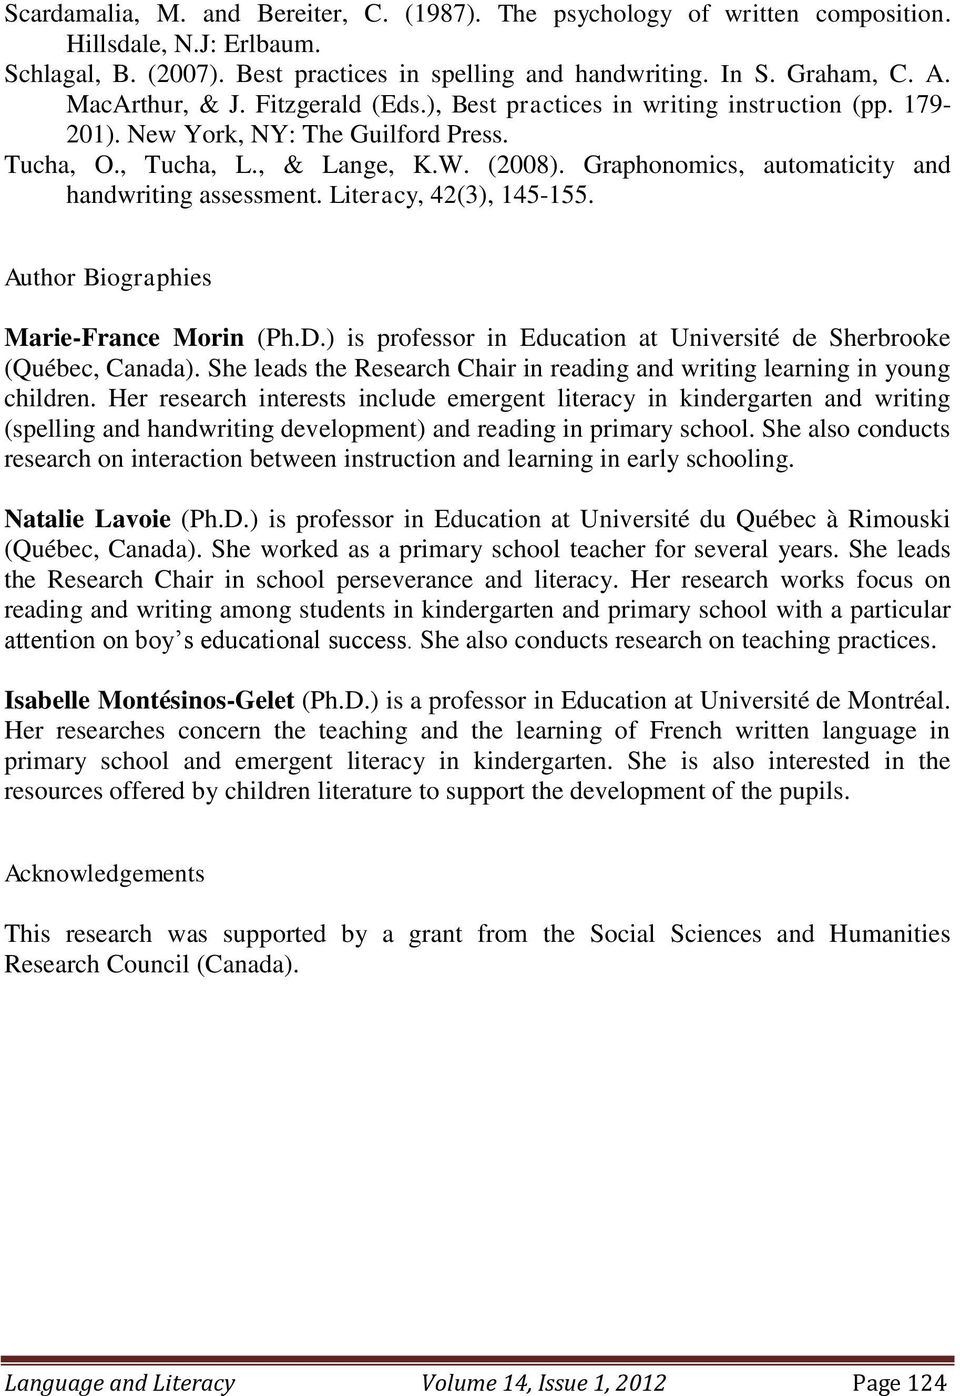 Graphonomics, automaticity and handwriting assessment. Literacy, 42(3), 145-155. Author Biographies Marie-France Morin (Ph.D.) is professor in Education at Université de Sherbrooke (Québec, Canada).